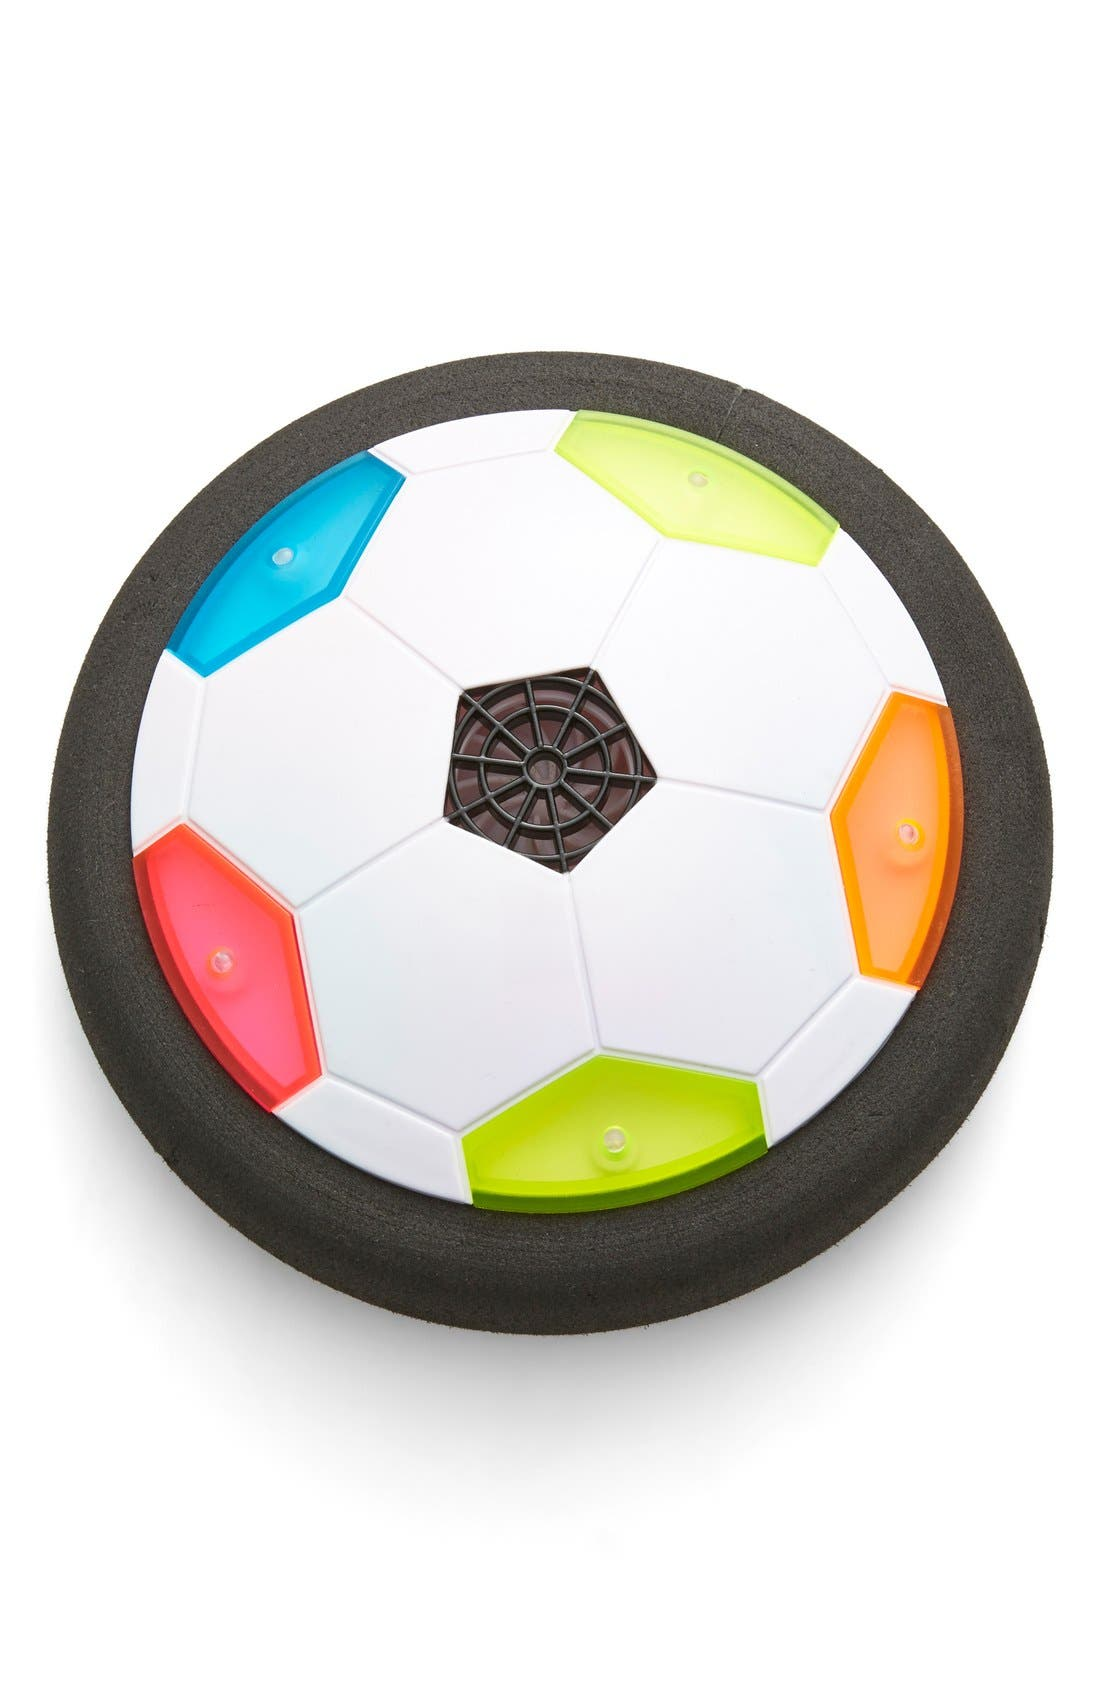 Alternate Image 1 Selected - Can You Imagine UltraGlow Light-Up Air Power Soccer Disk